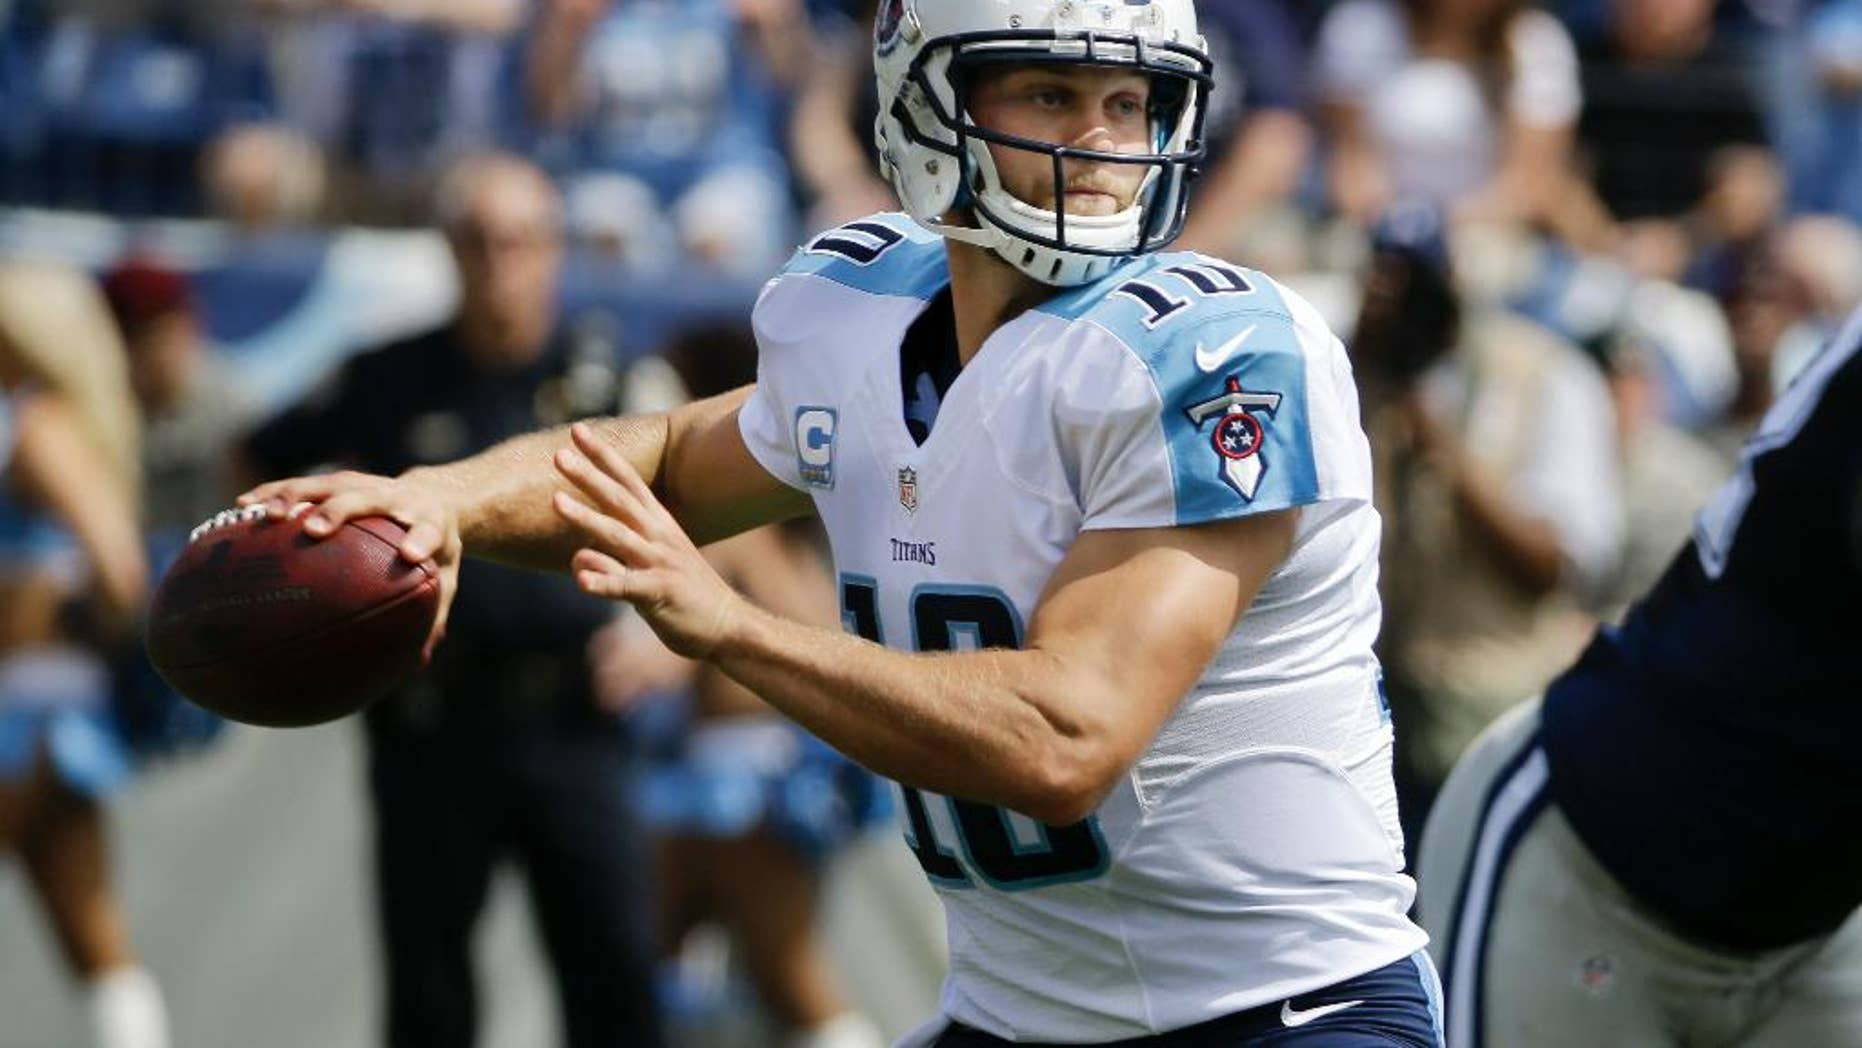 FILE - In this Sept. 14, 2014, file photo, Tennessee Titans quarterback Jake Locker (10) passes against the Dallas Cowboys in the first quarter of an NFL football game in Nashville, Tenn. Locker appears to be ready to return to the starting lineup for Tennessee after missing a game with his injured right wrist.  (AP Photo/Wade Payne, File)